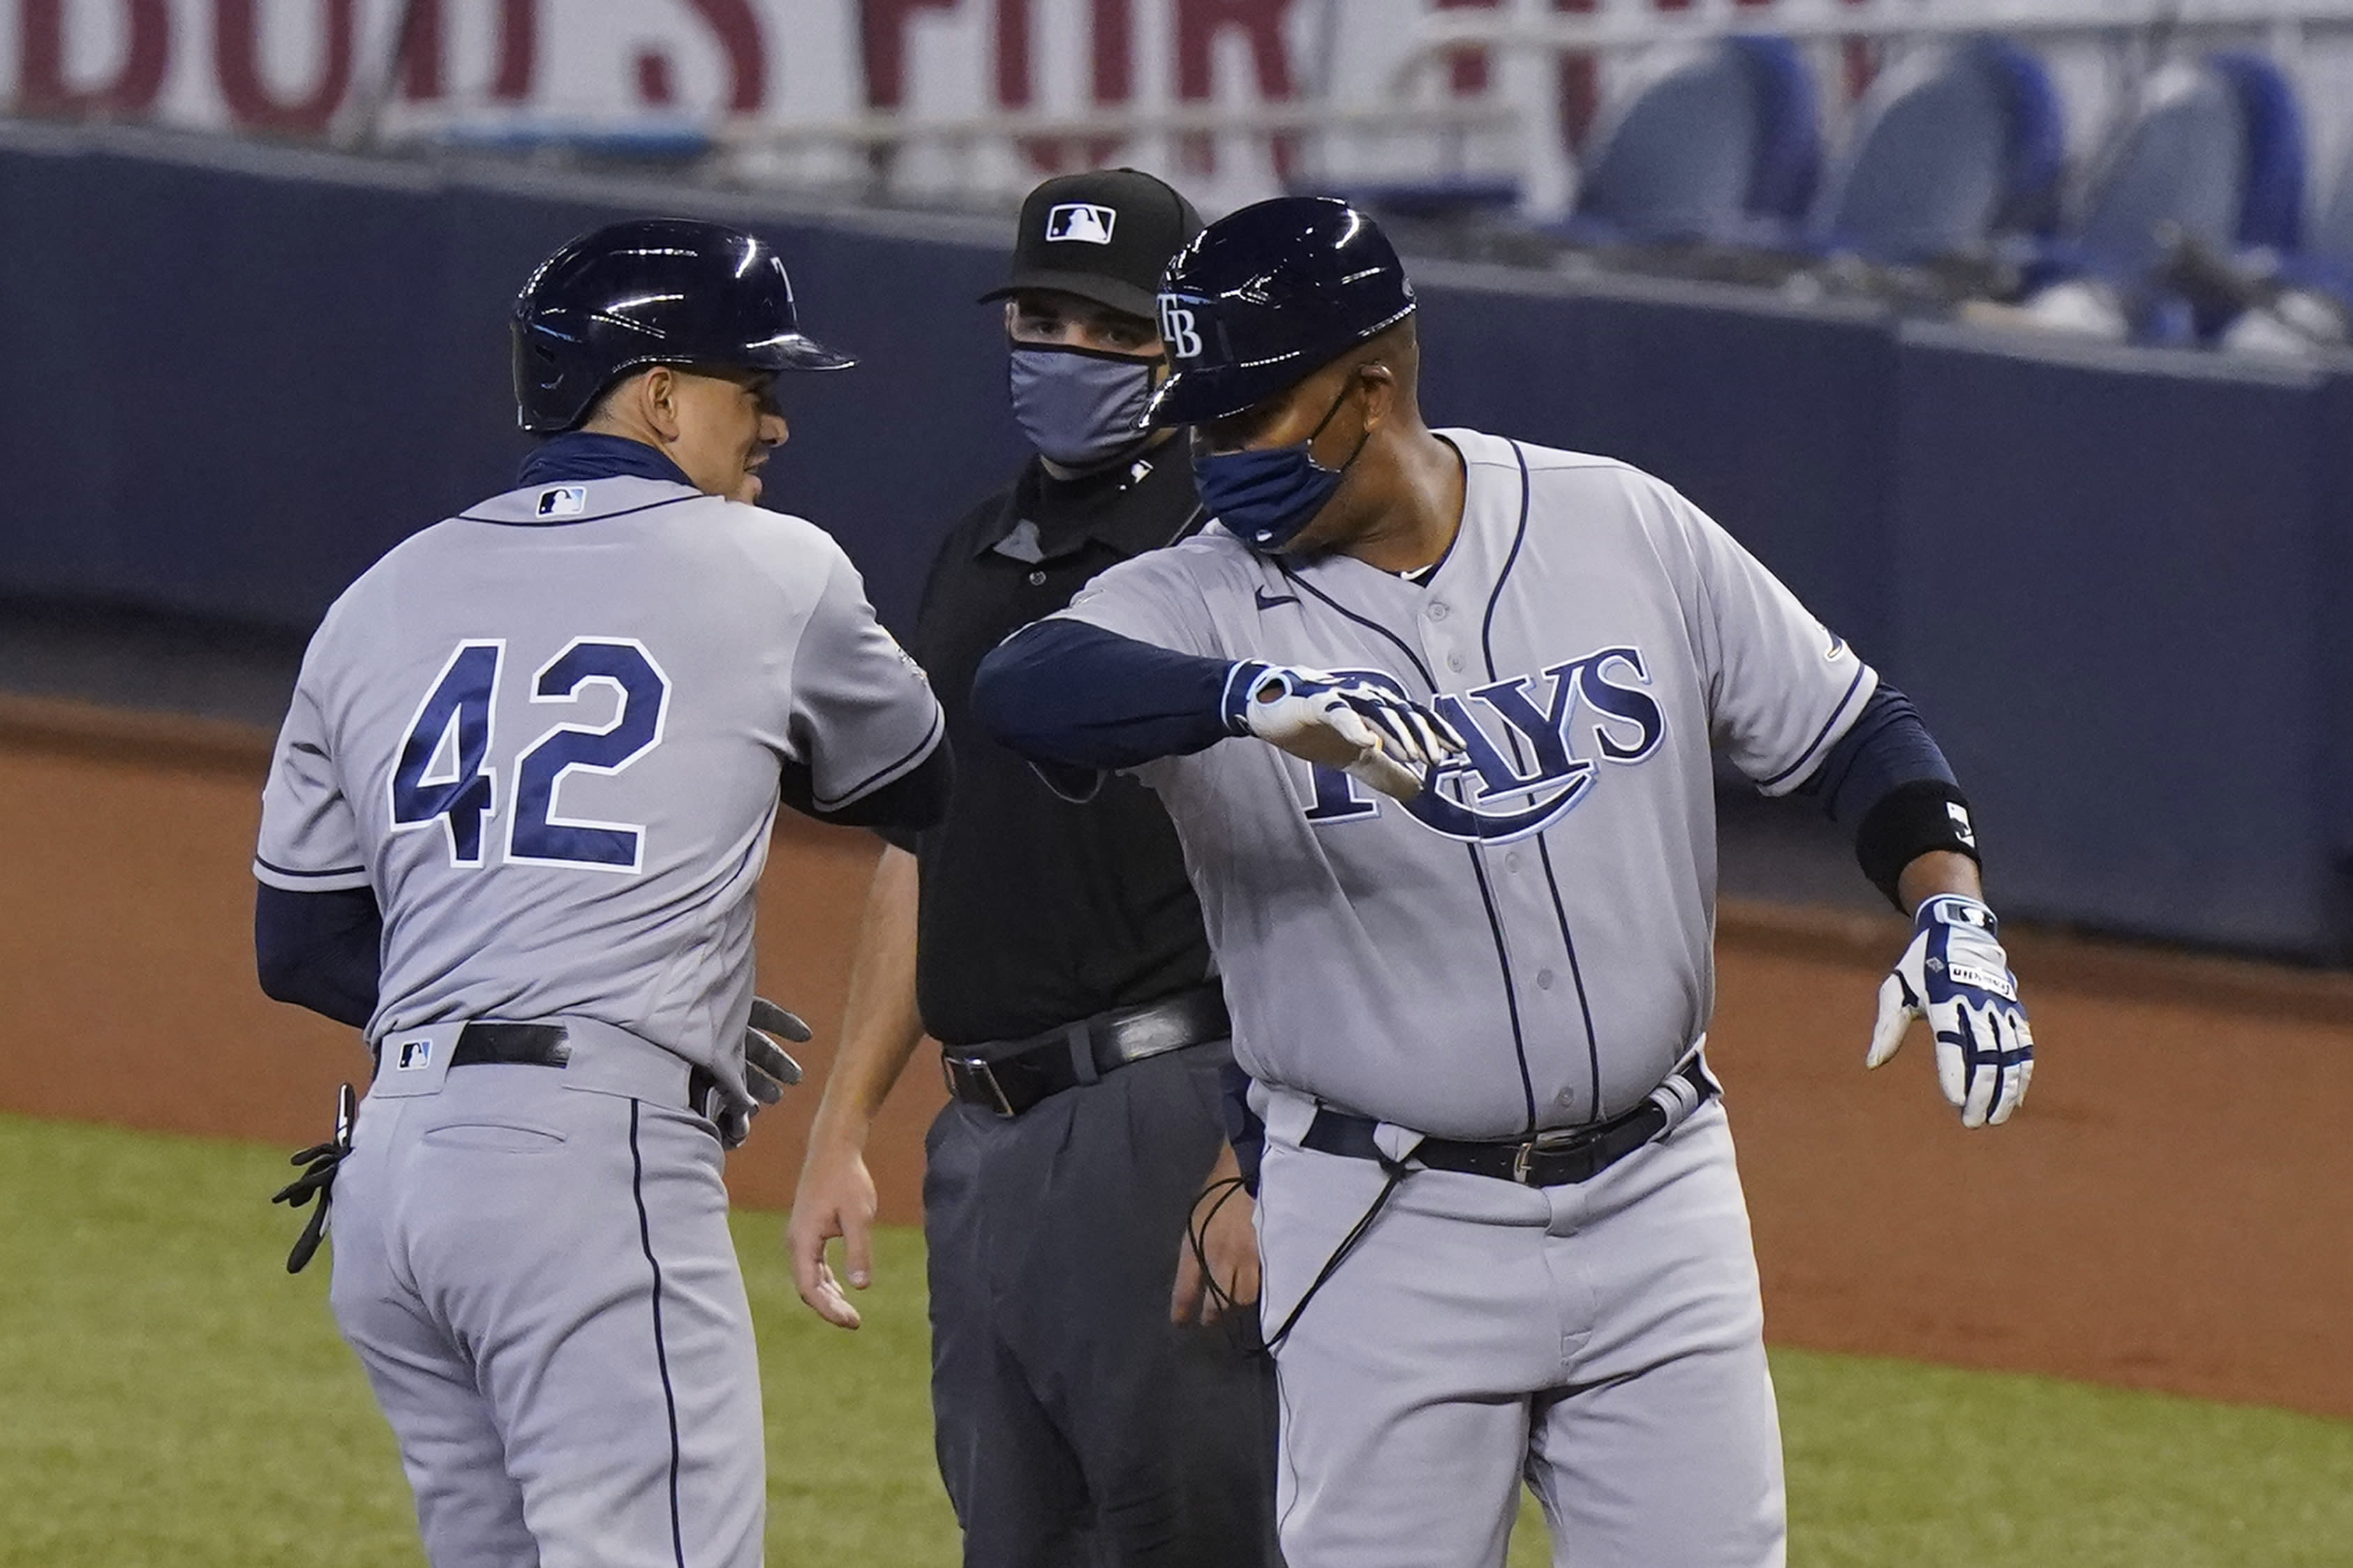 Tampa Bay Rays' Willy Adames, left, is congratulated by first base coach Ozzie Timmons after getting a base hit during the first inning of a baseball game against the Miami Marlins, Sunday, Aug. 30, 2020, in Miami. (AP Photo/Wilfredo Lee)